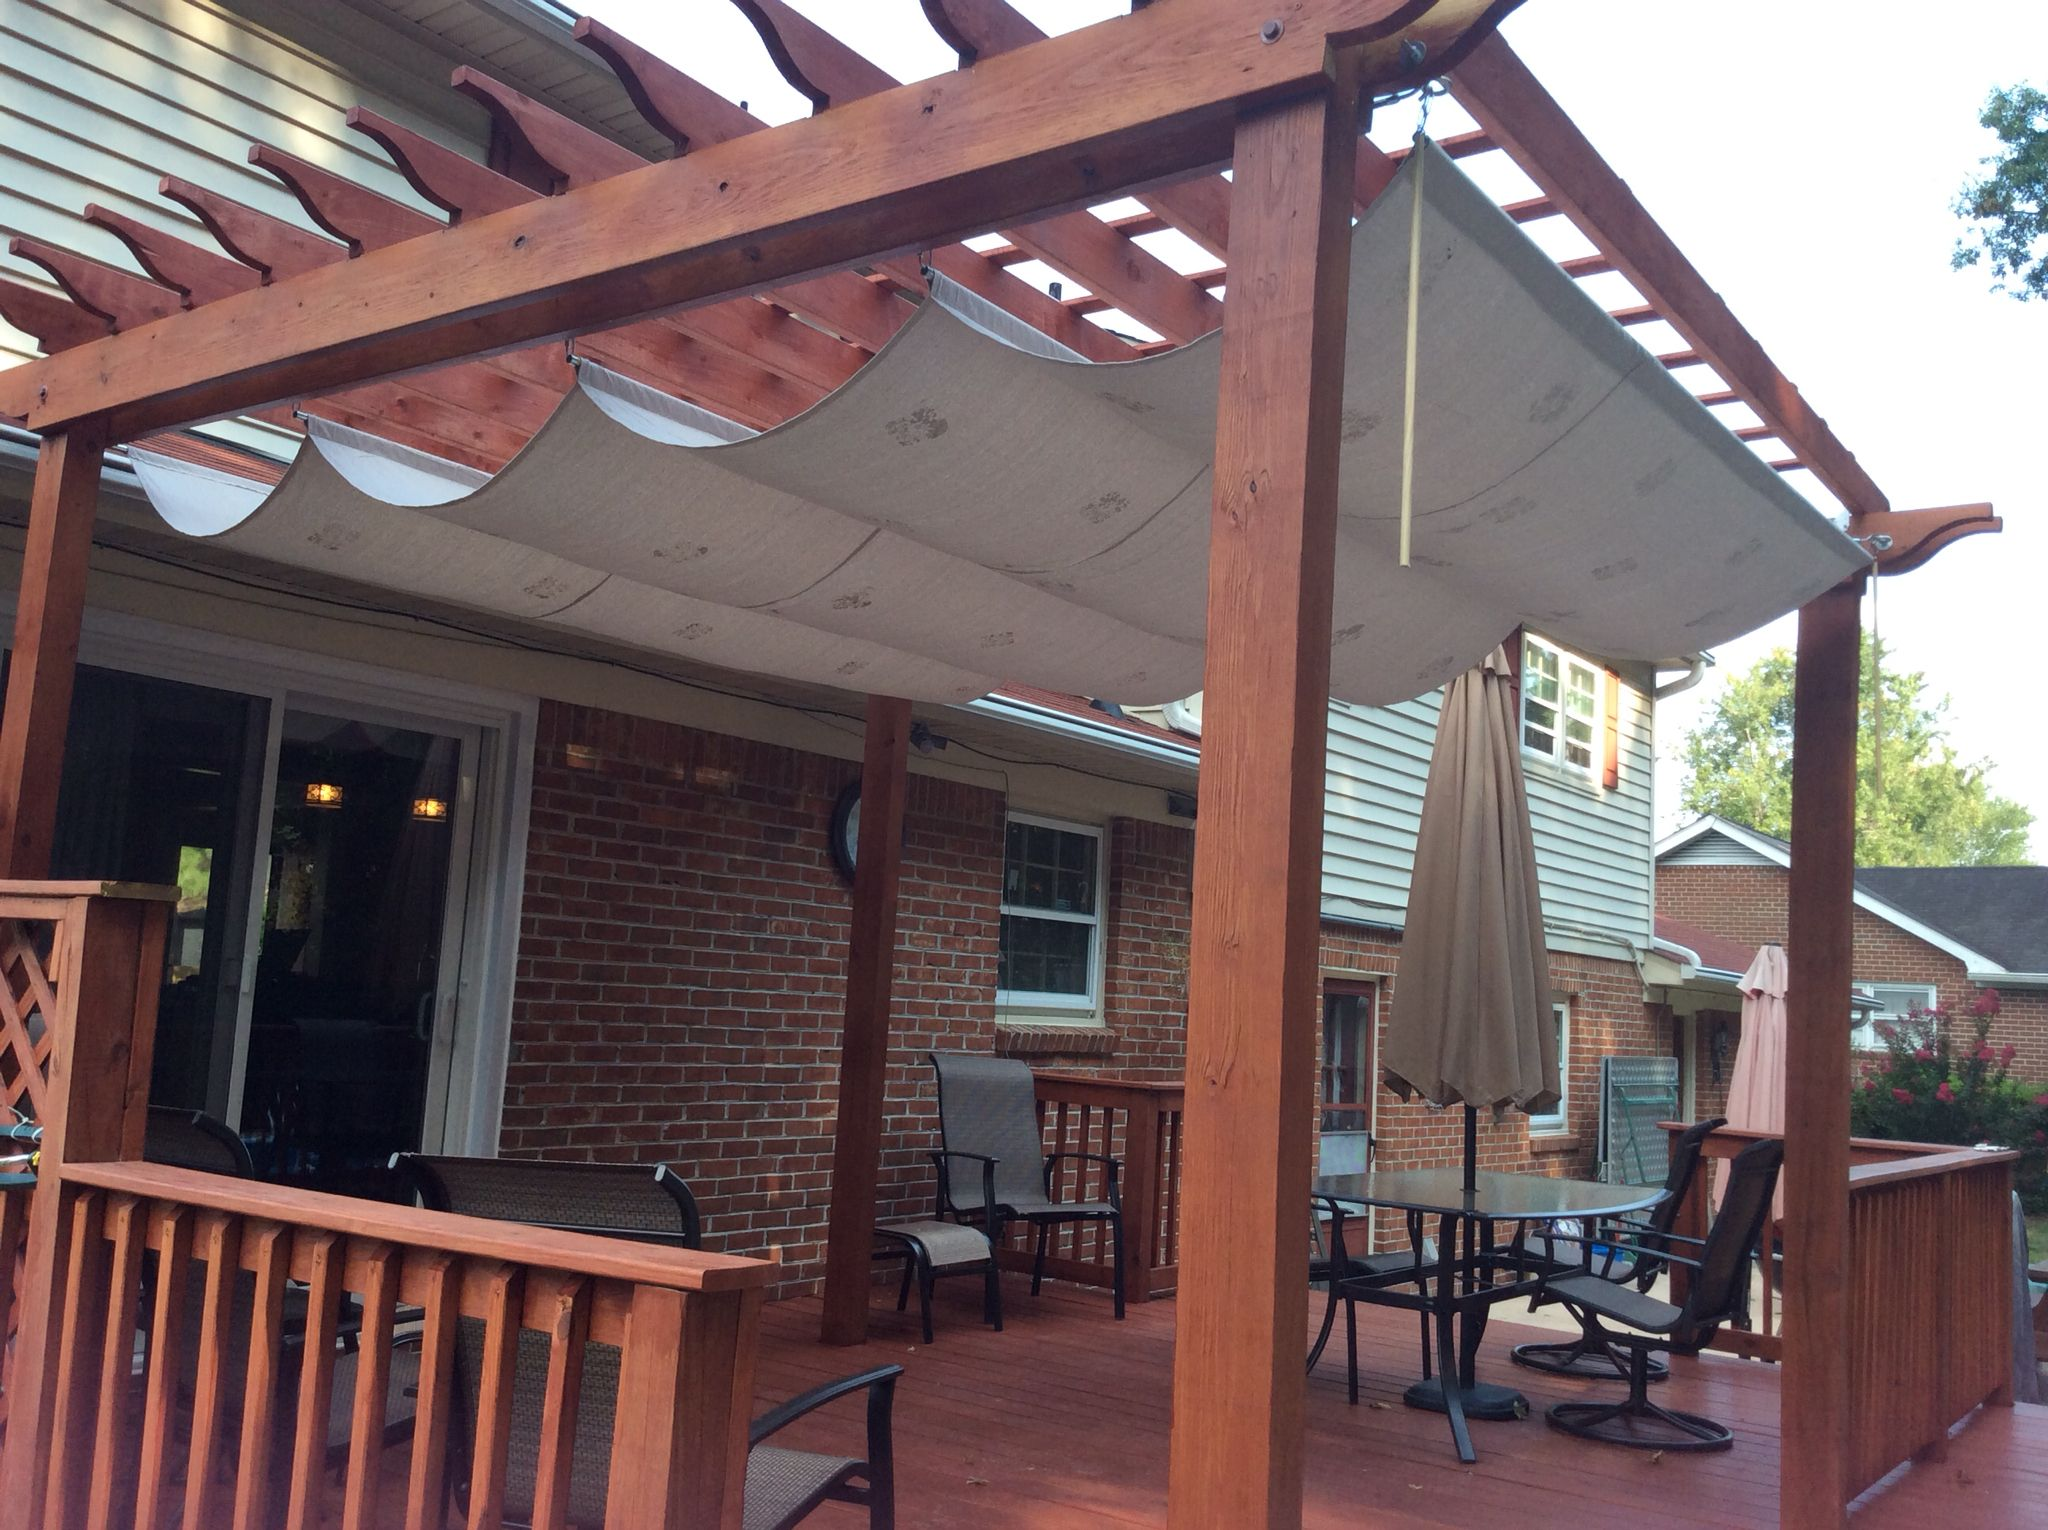 Pergola Shade Made With A Painters Tarp From Home Depot